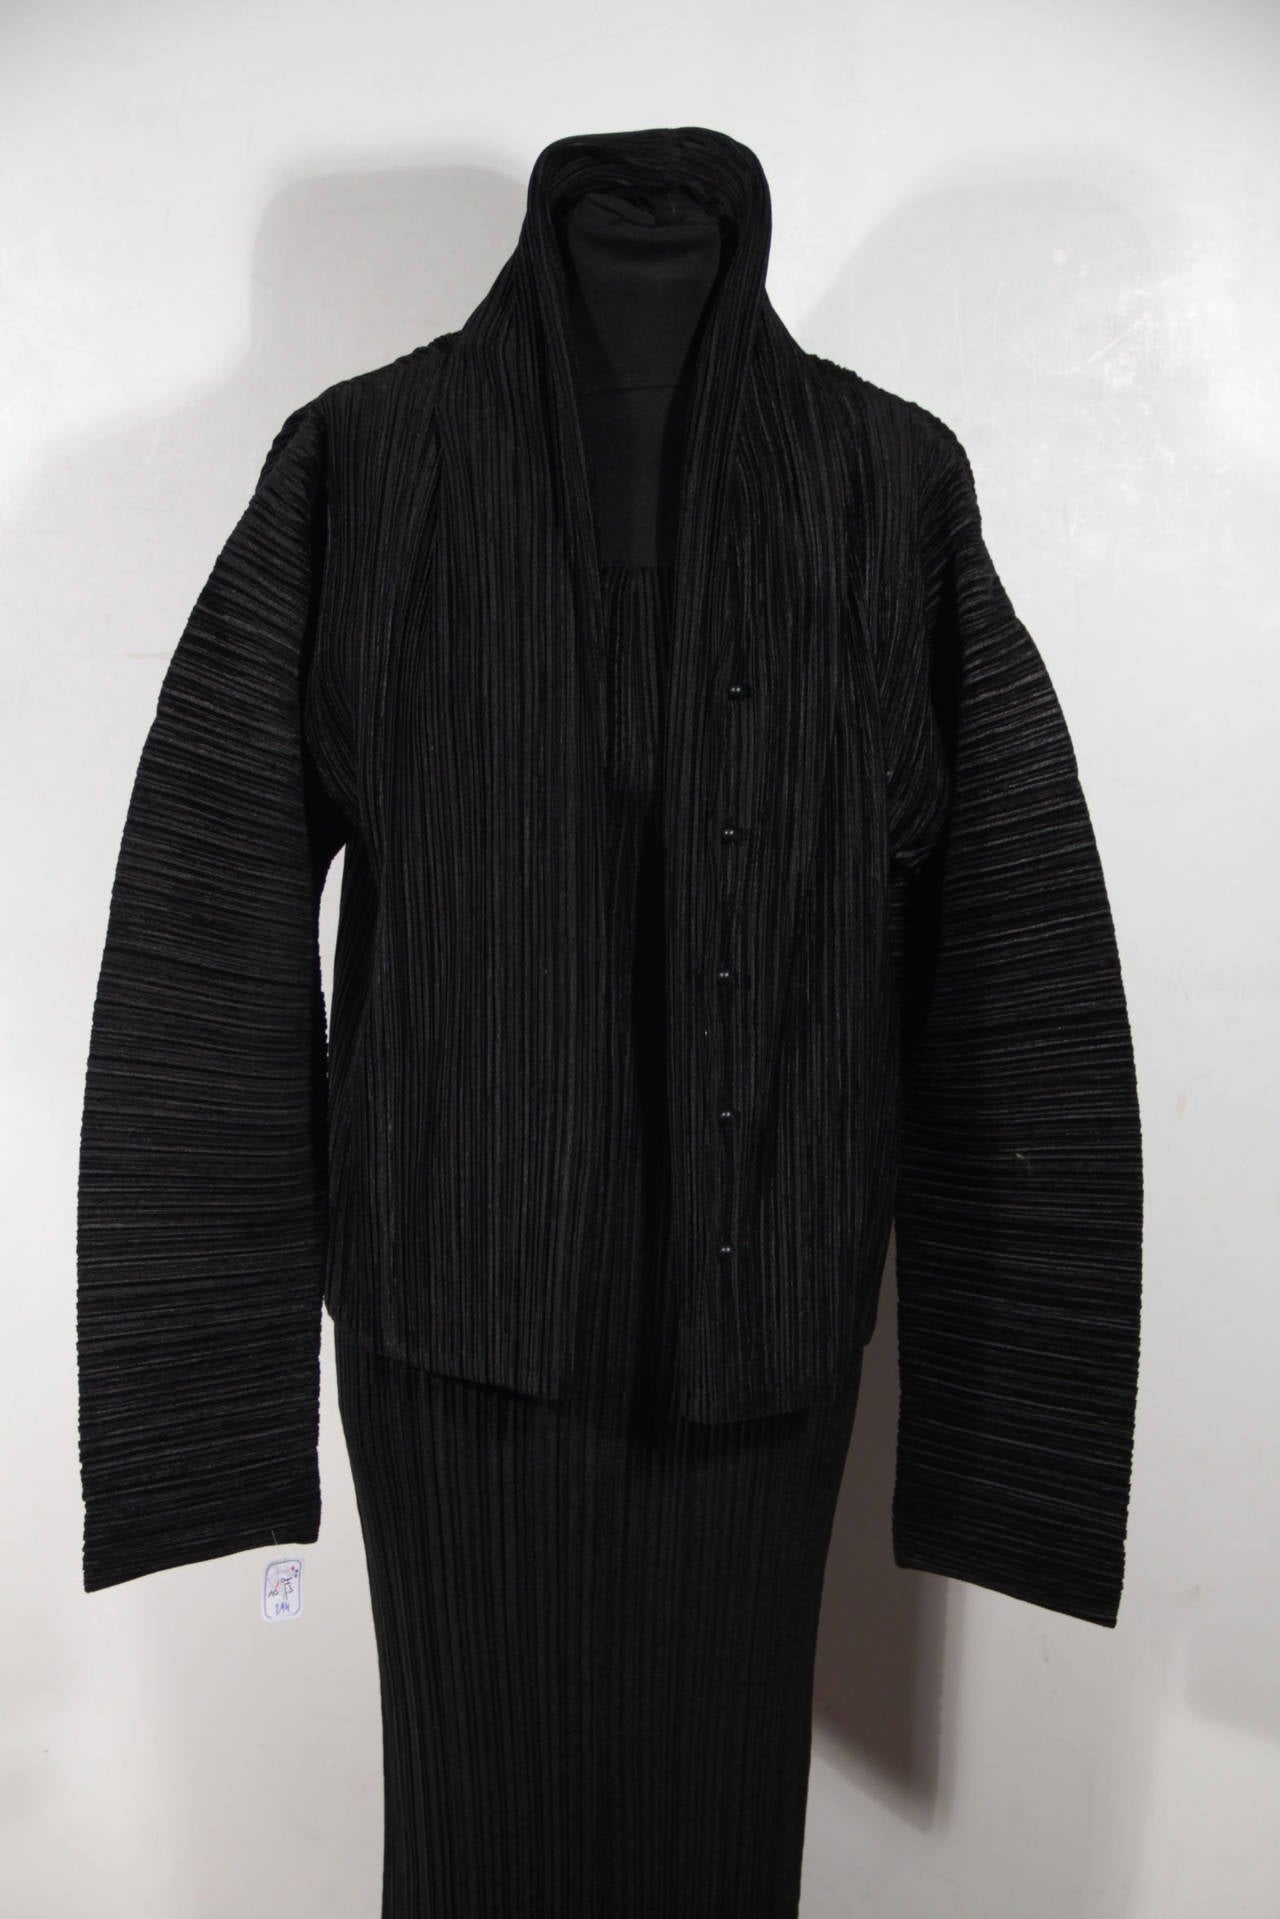 Issey Miyake Black Pleated Dress Suit Jacket And Maxi